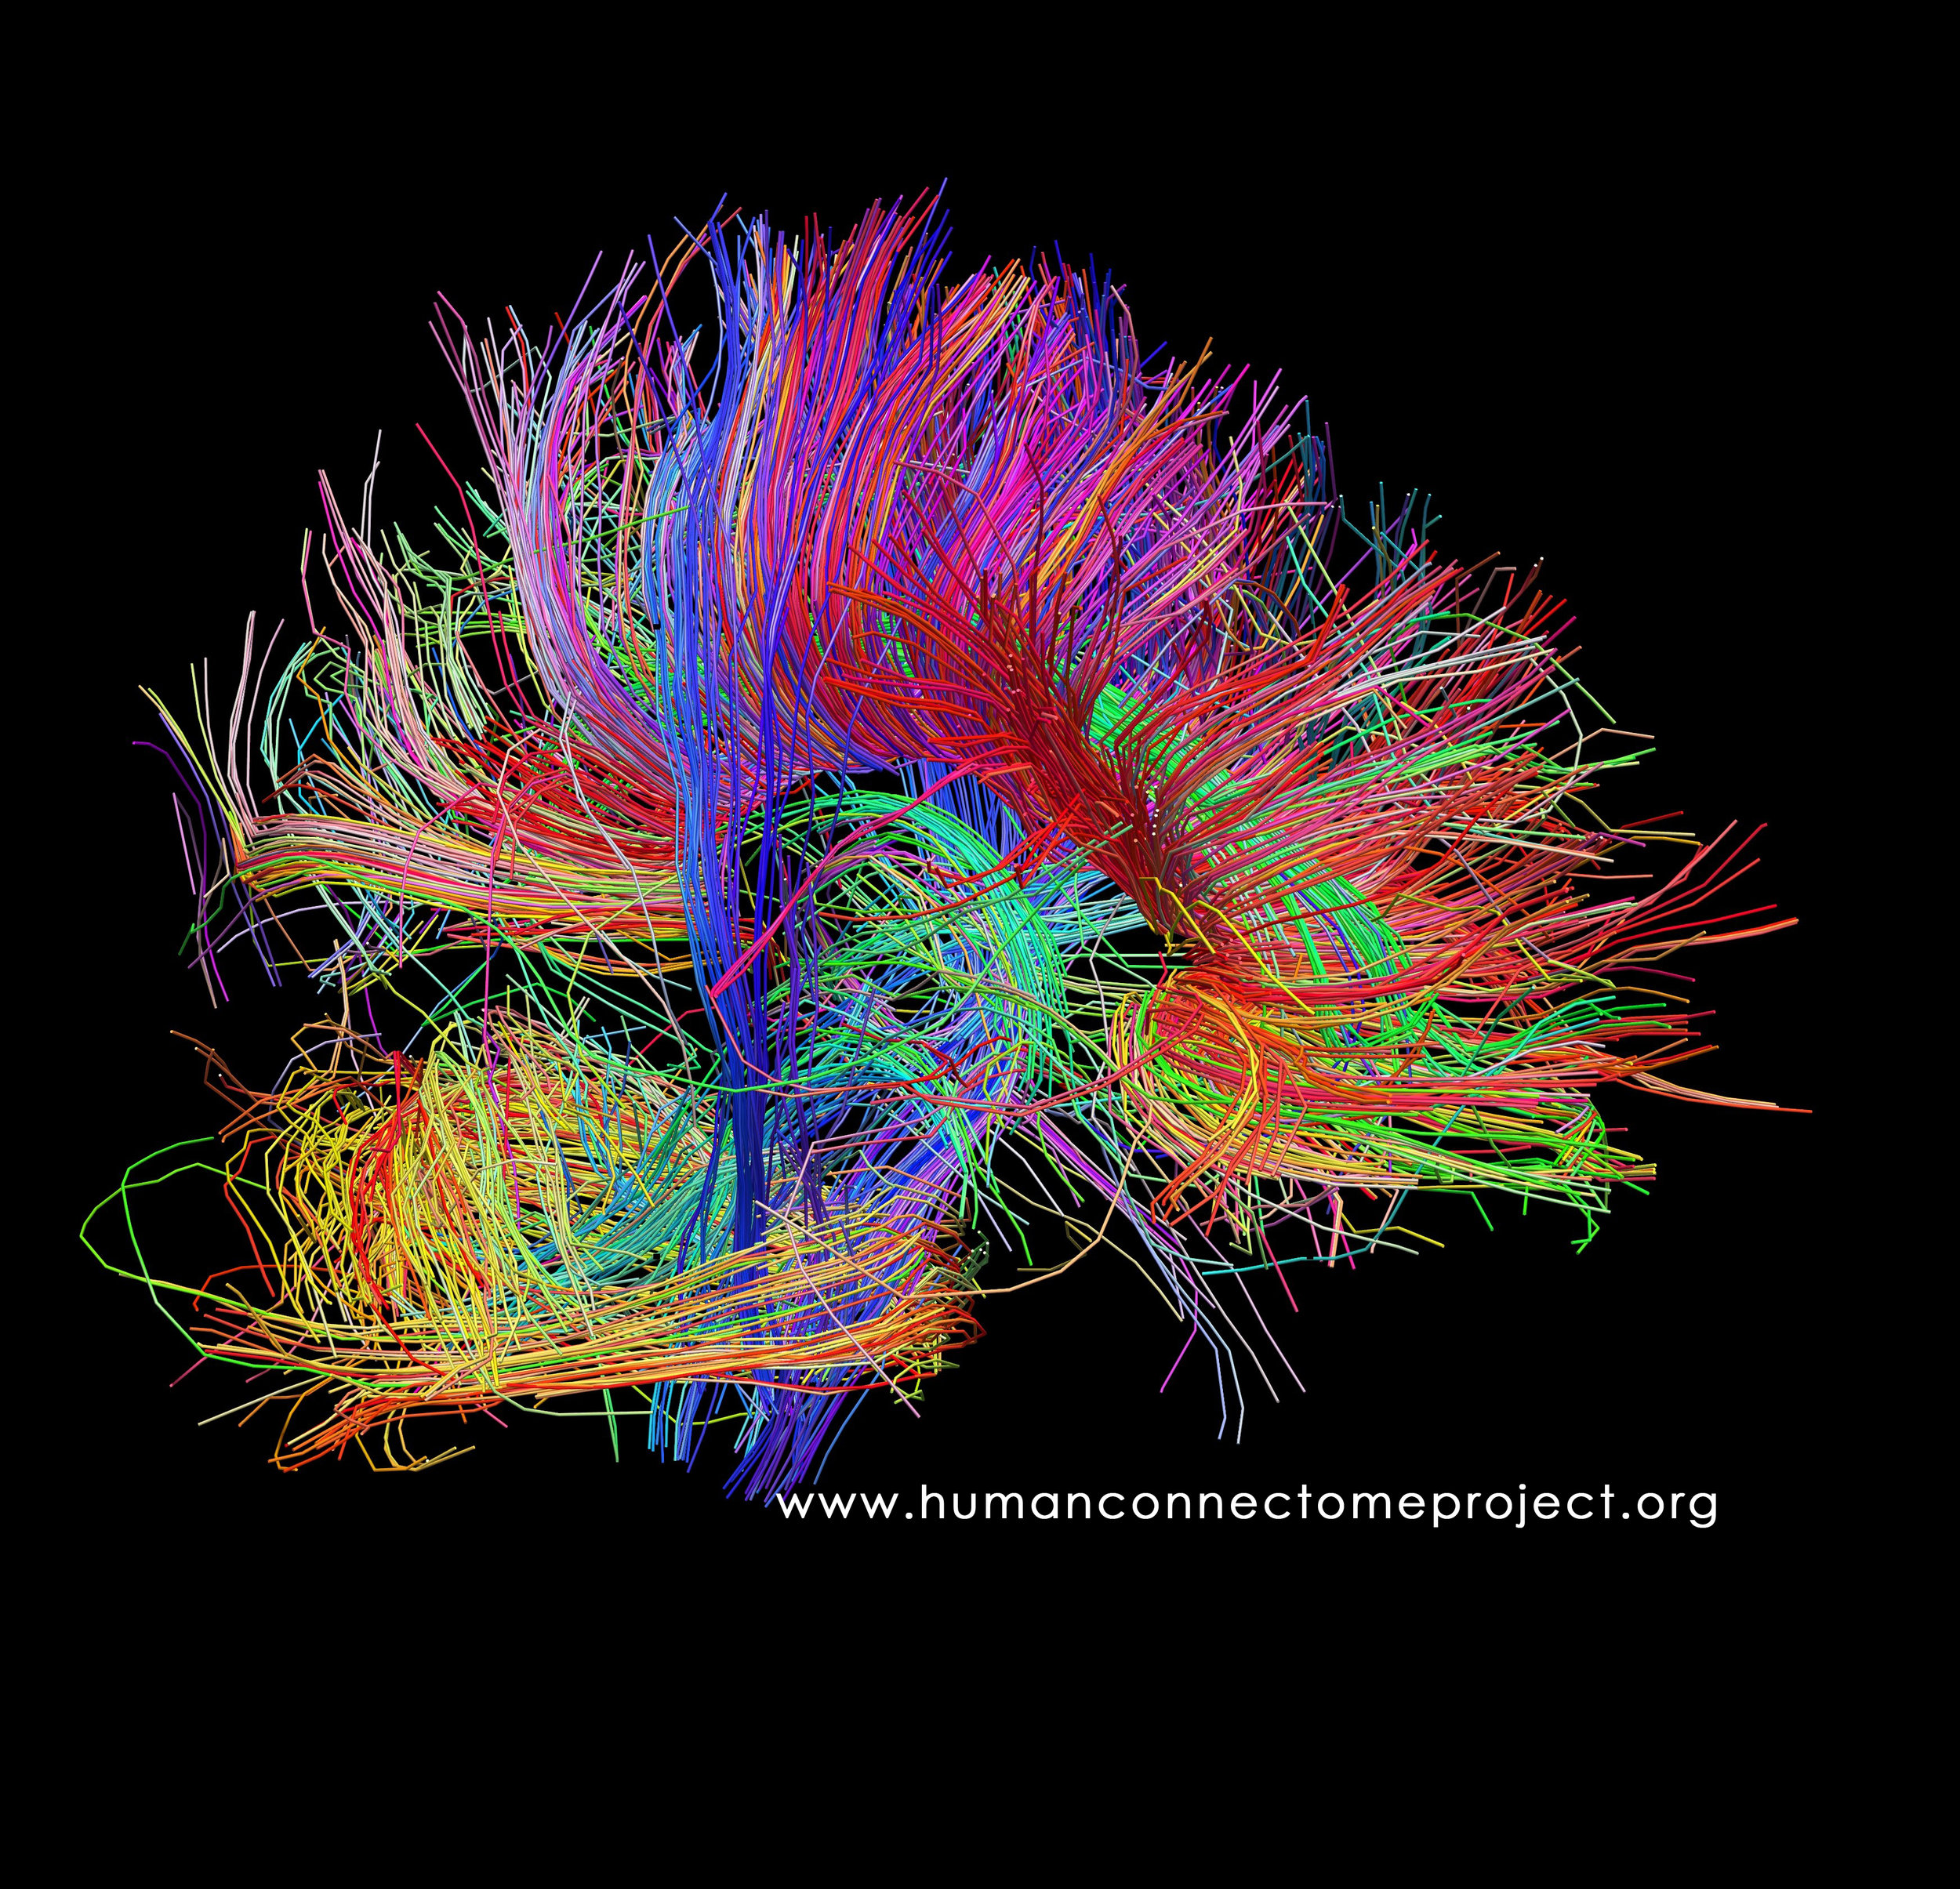 The image above captures on camera the neural pathways of a real human brain. on the left is a real human brain. The colour-coded ed lines show are neural pathways caught on camera. They are colour coded based on their the directional flow within in the brain. This image was made available to us courtesy of the Laboratory of Neuro Imaging and Martinos Center for Biomedical Imaging, Consortium of the  Human Connectome Project .